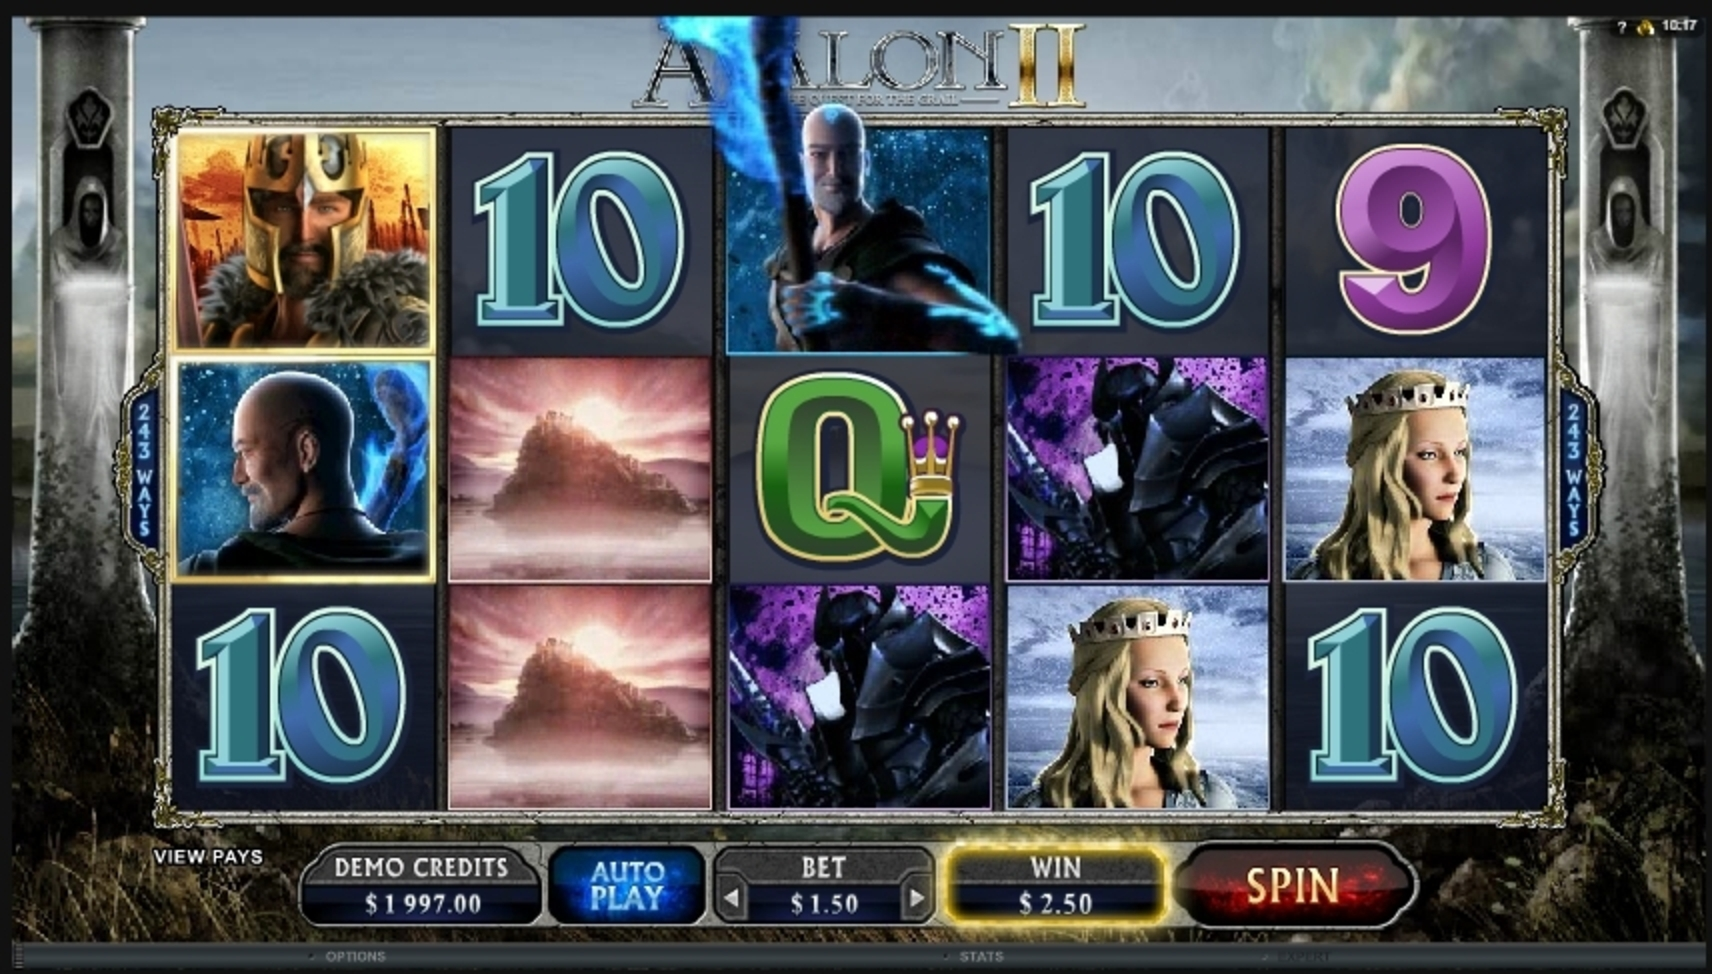 Win Money in Avalon II Free Slot Game by Microgaming